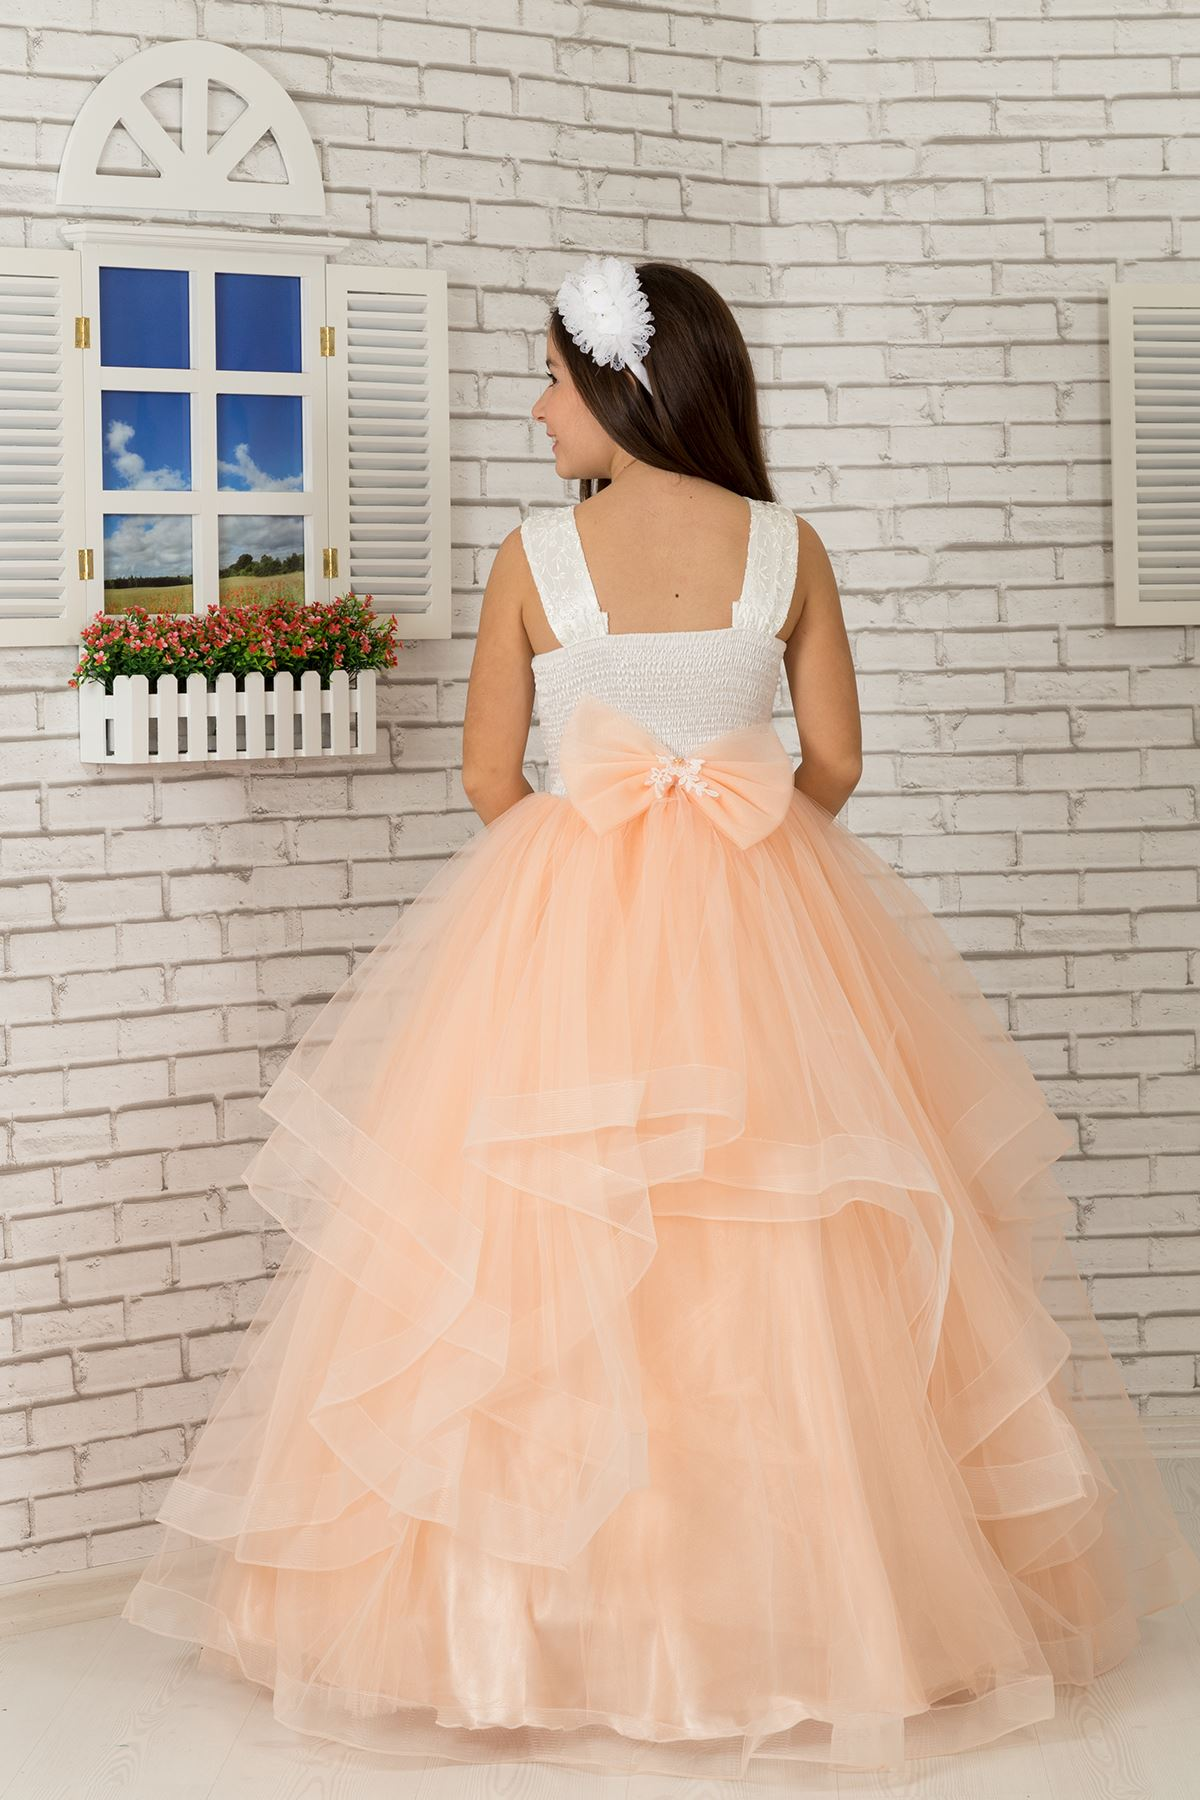 Embroidered applique, waist flower detail, tulle Fluffy Girl's Evening Dress 607 Salmon